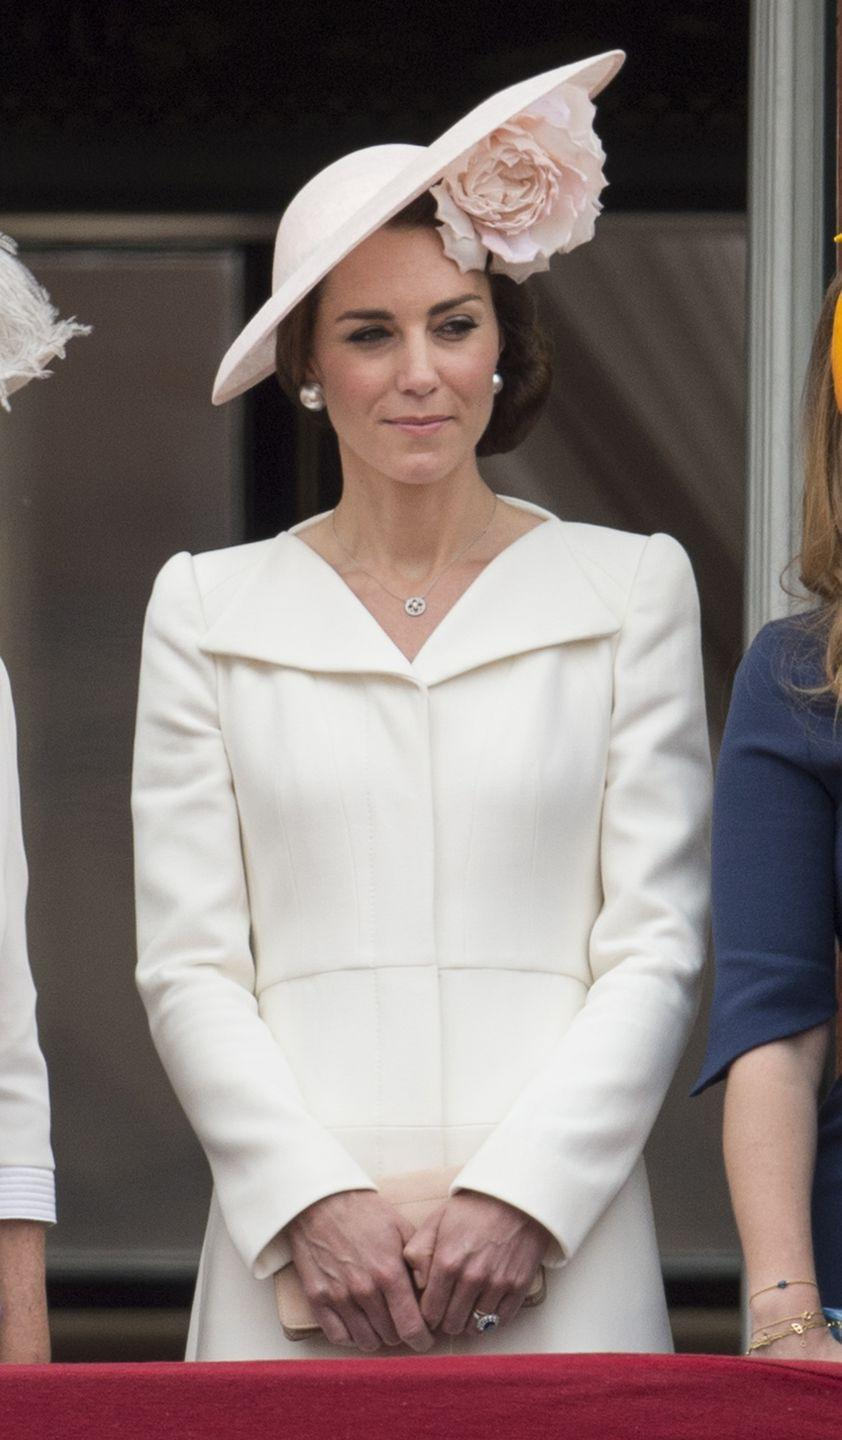 <p>She'd previously worn the outfit at the 2016 Trooping of the Colour - this time with a pale pink hat.</p>